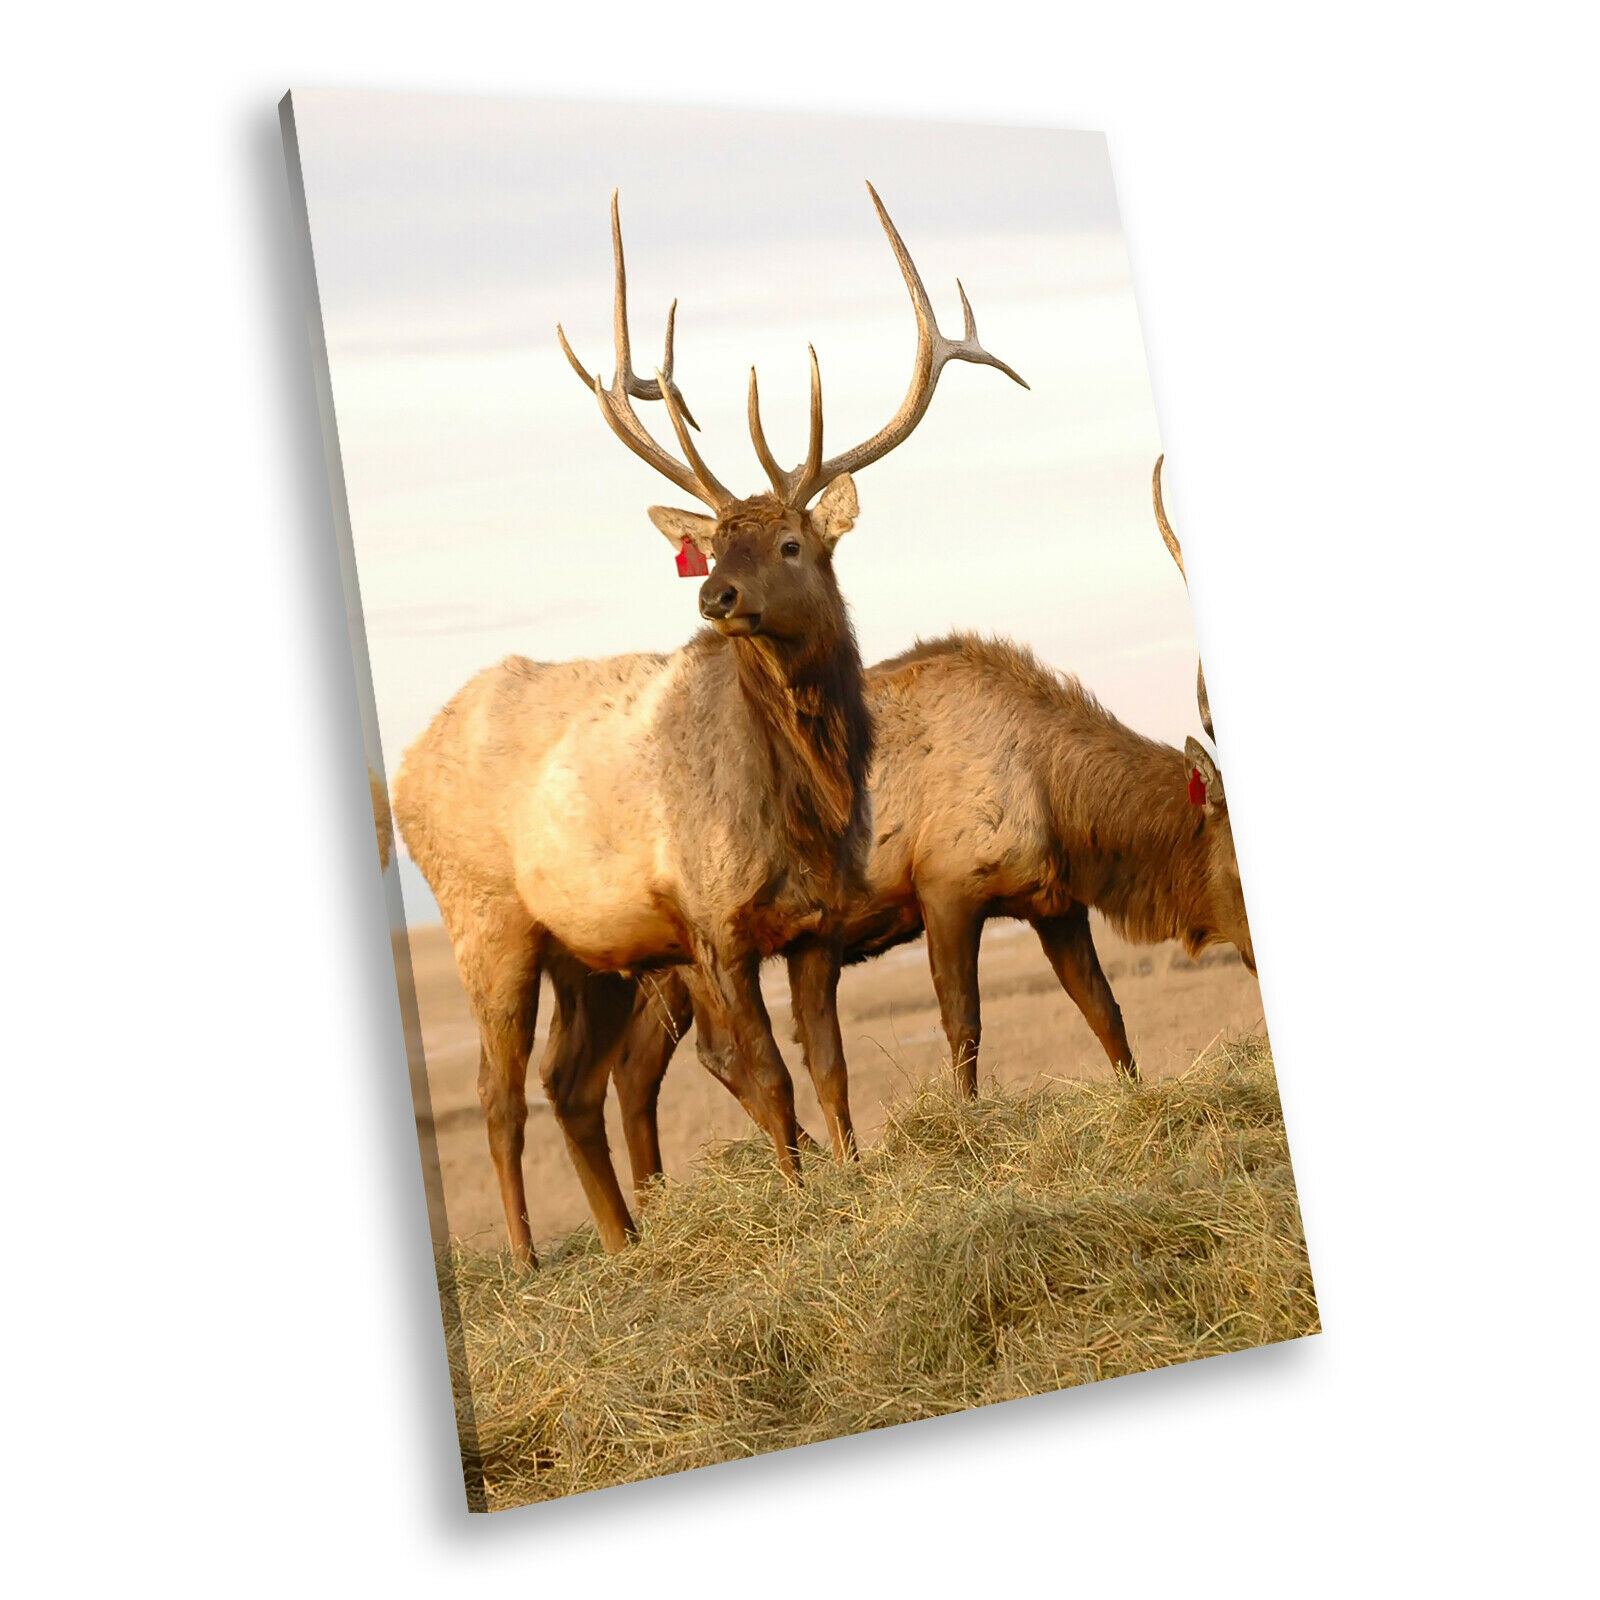 Stag Deer Grass braun  Portrait Animal Canvas Wall Art Large Picture Prints